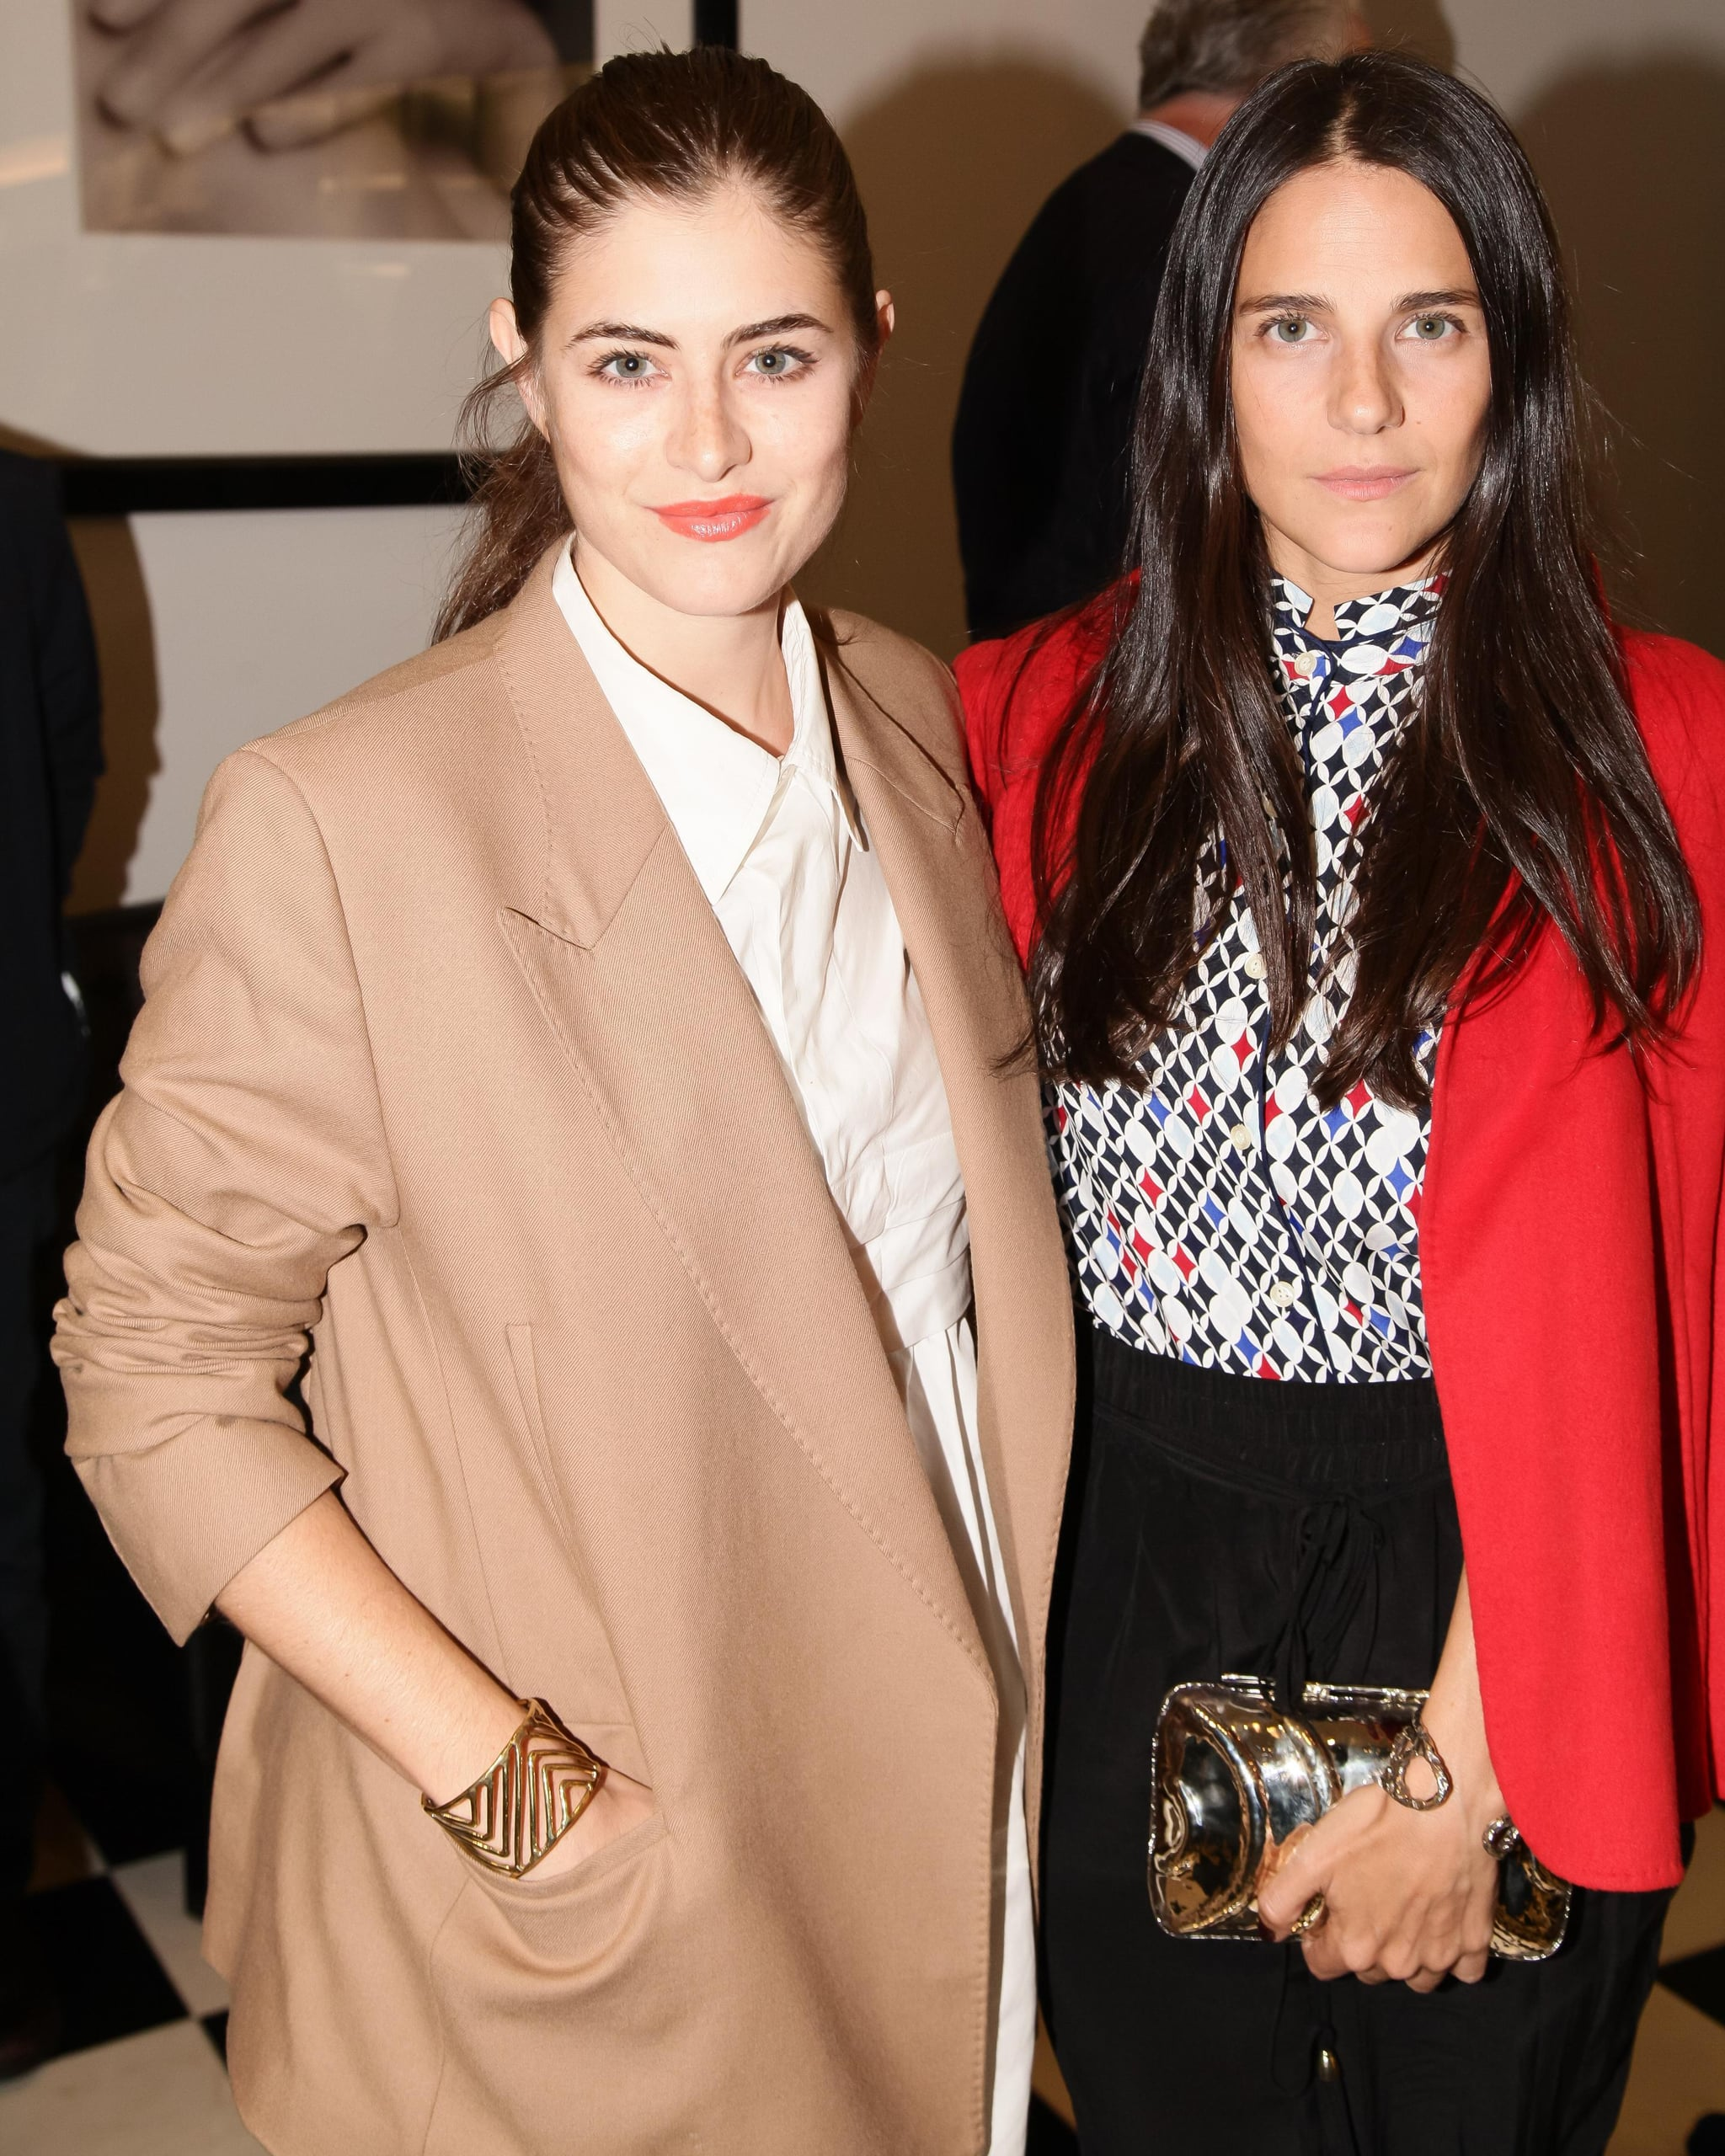 Annette and Phoebe Stephens had coats too good to take off inside at the Bloomingdale's Vensette event.